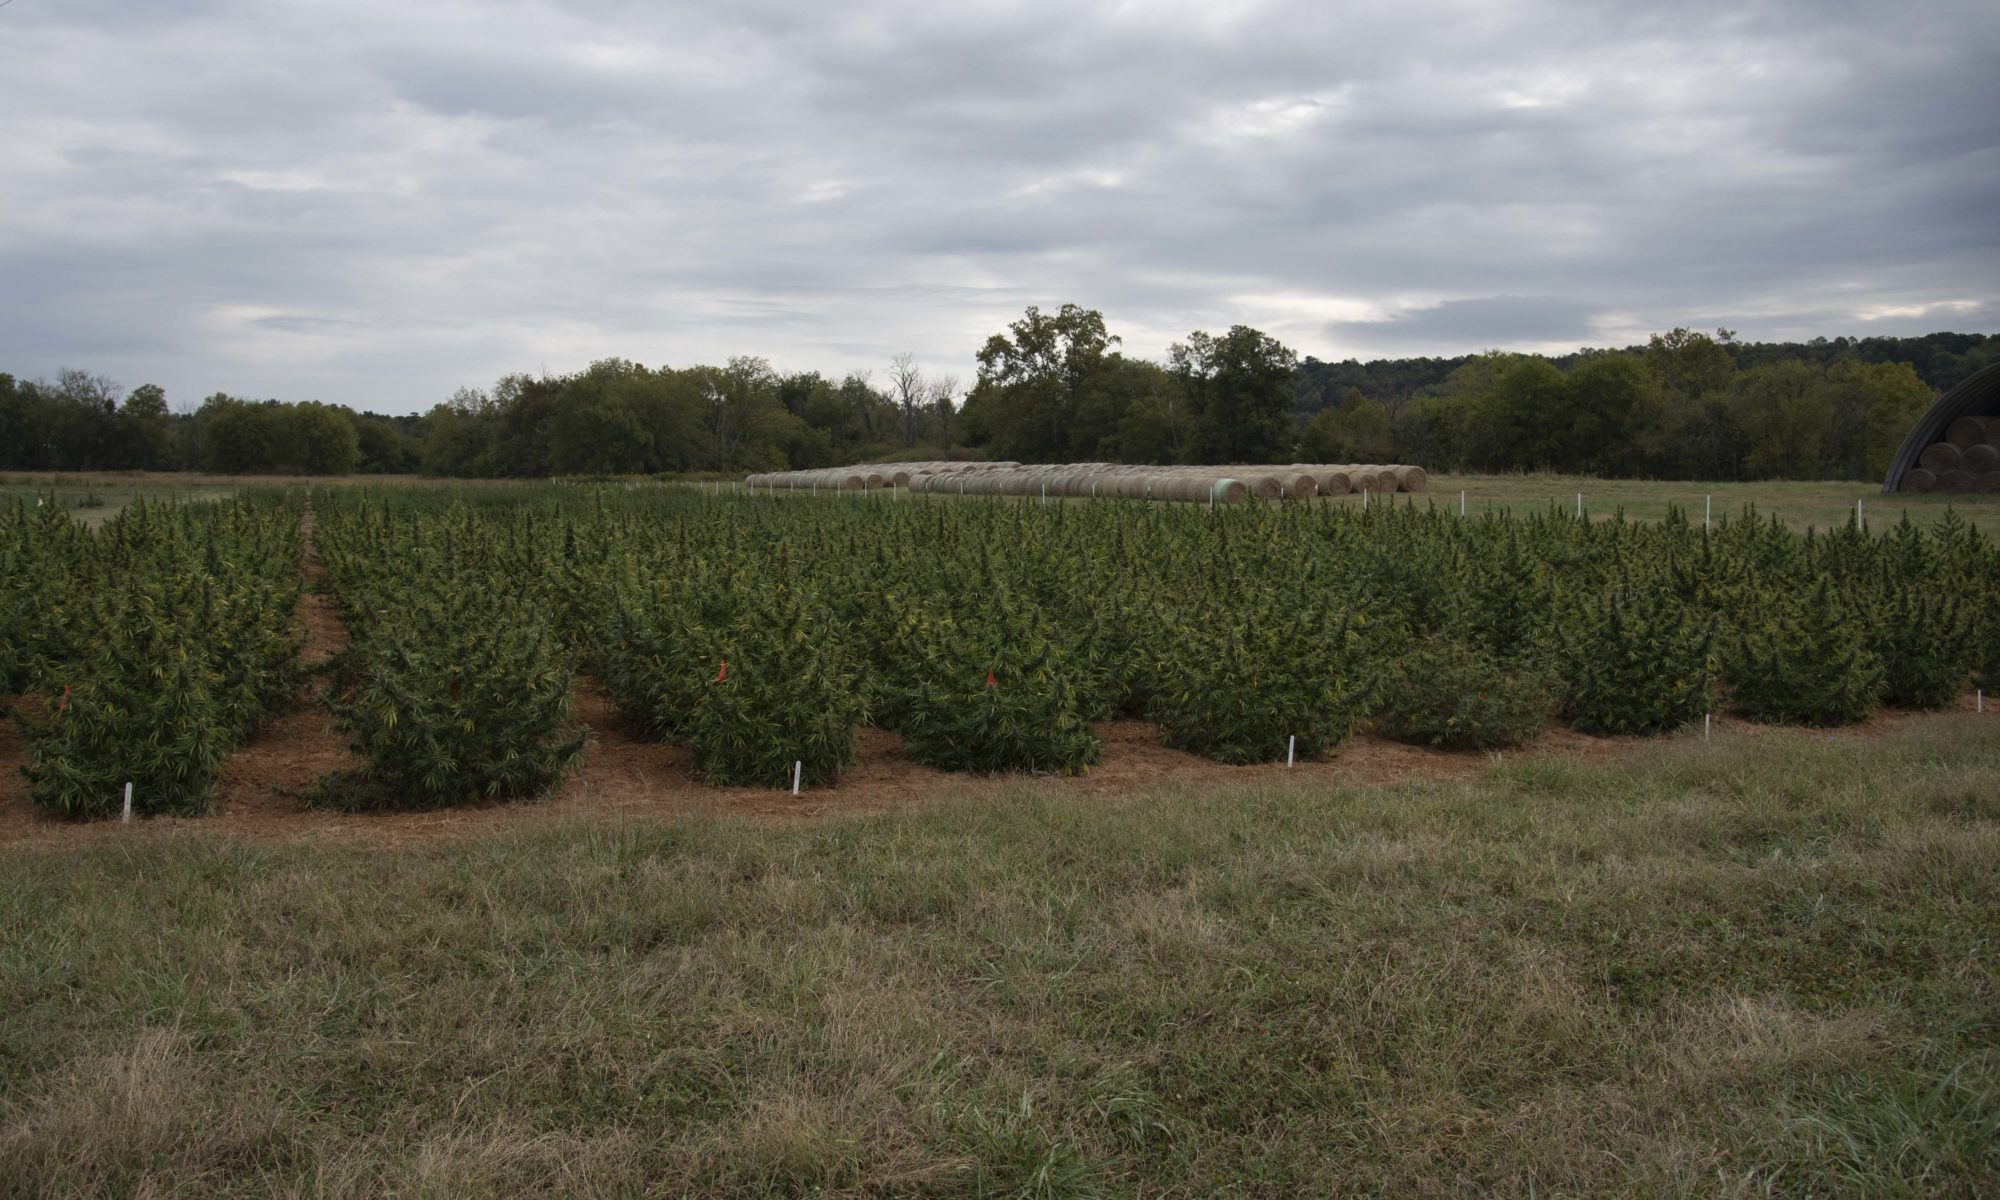 Hemp plants at Northeast AgResearch and Education Center